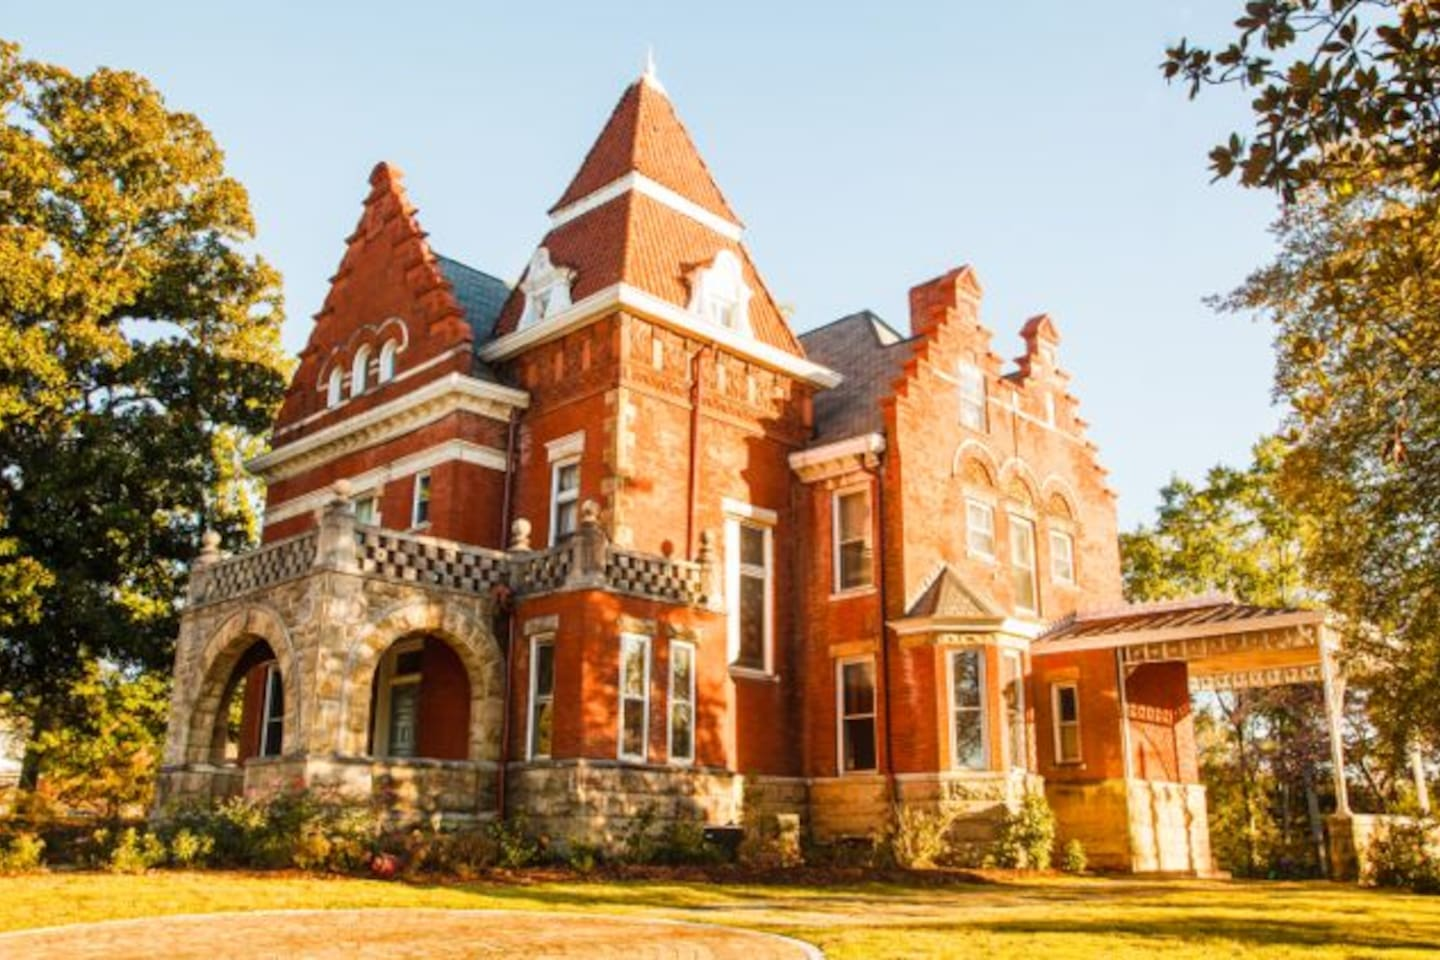 The Parker House Bed and Breakfast, Anniston, AL